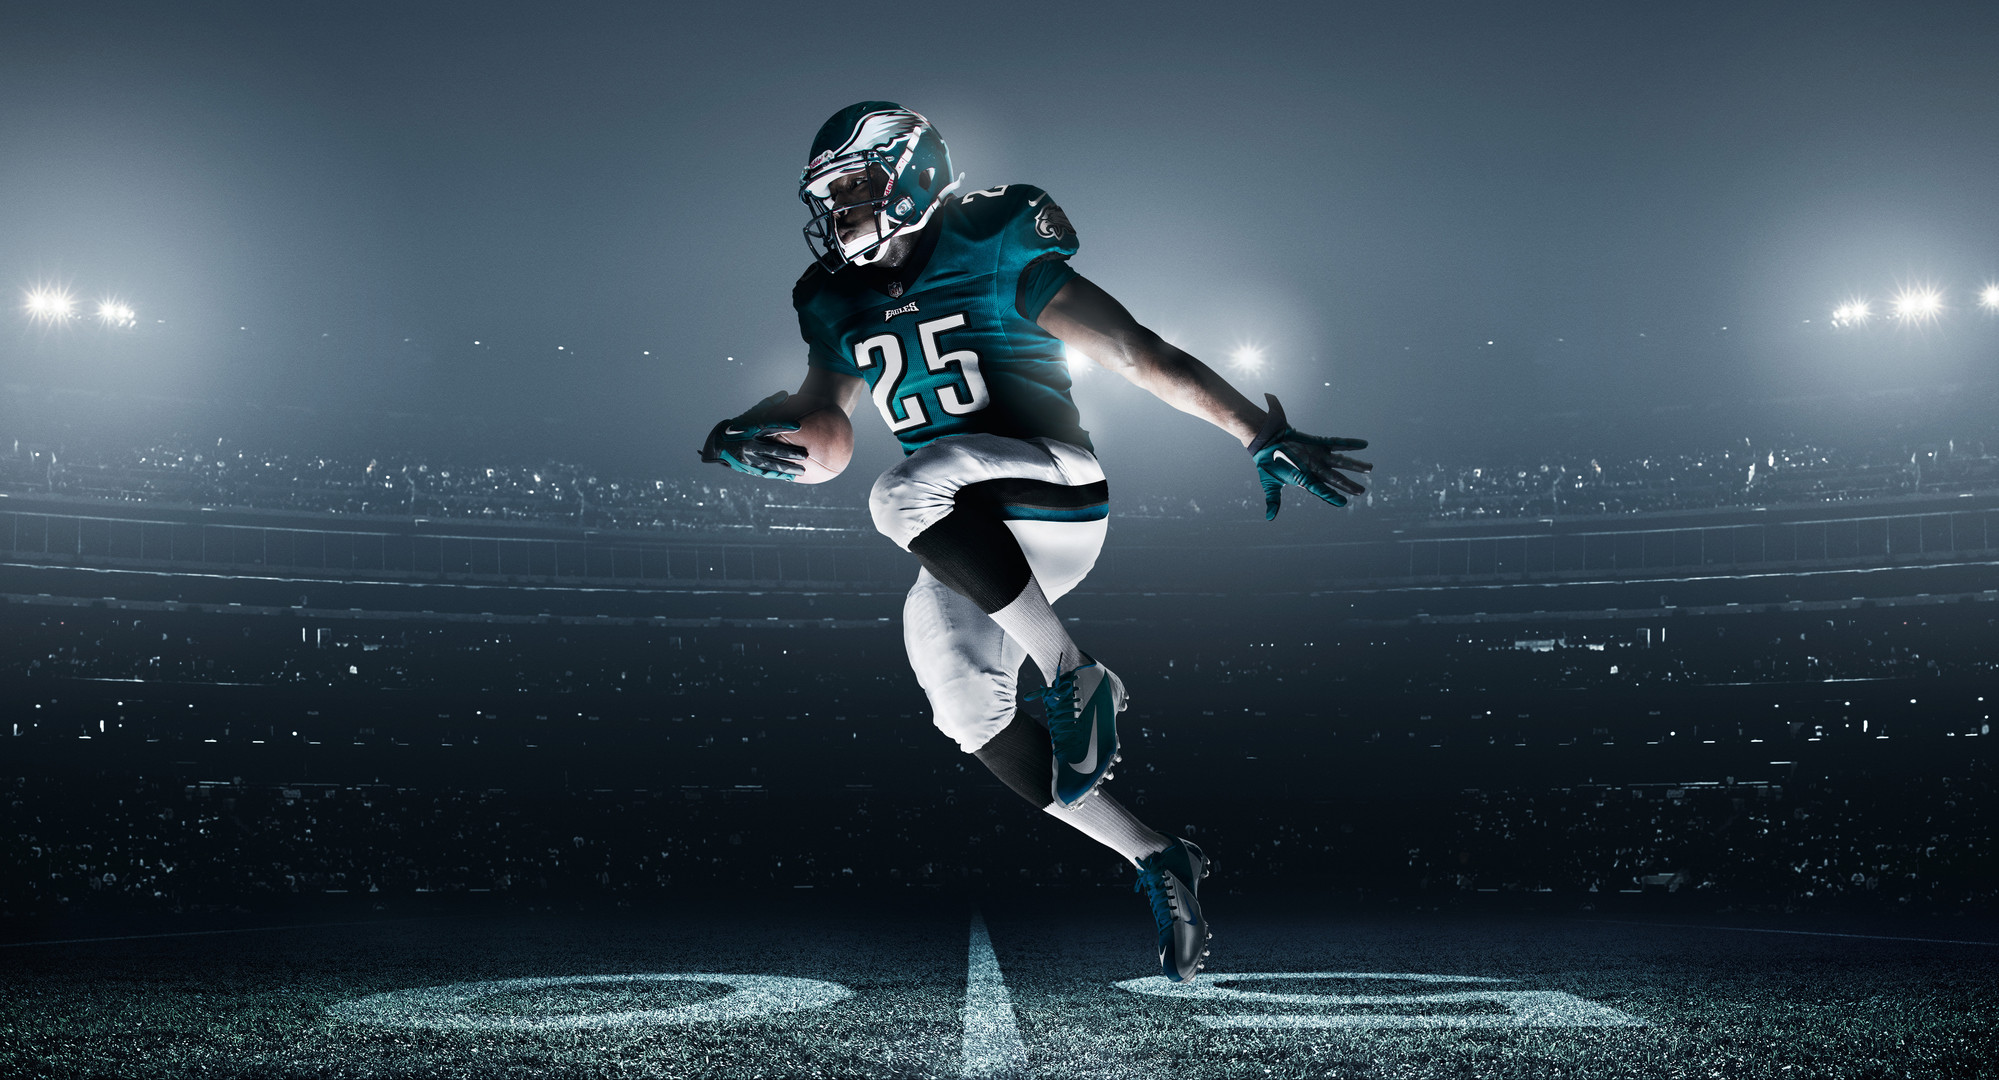 FA12_AT_MCCOY_NFL_Eagles Uniform003_TEAM